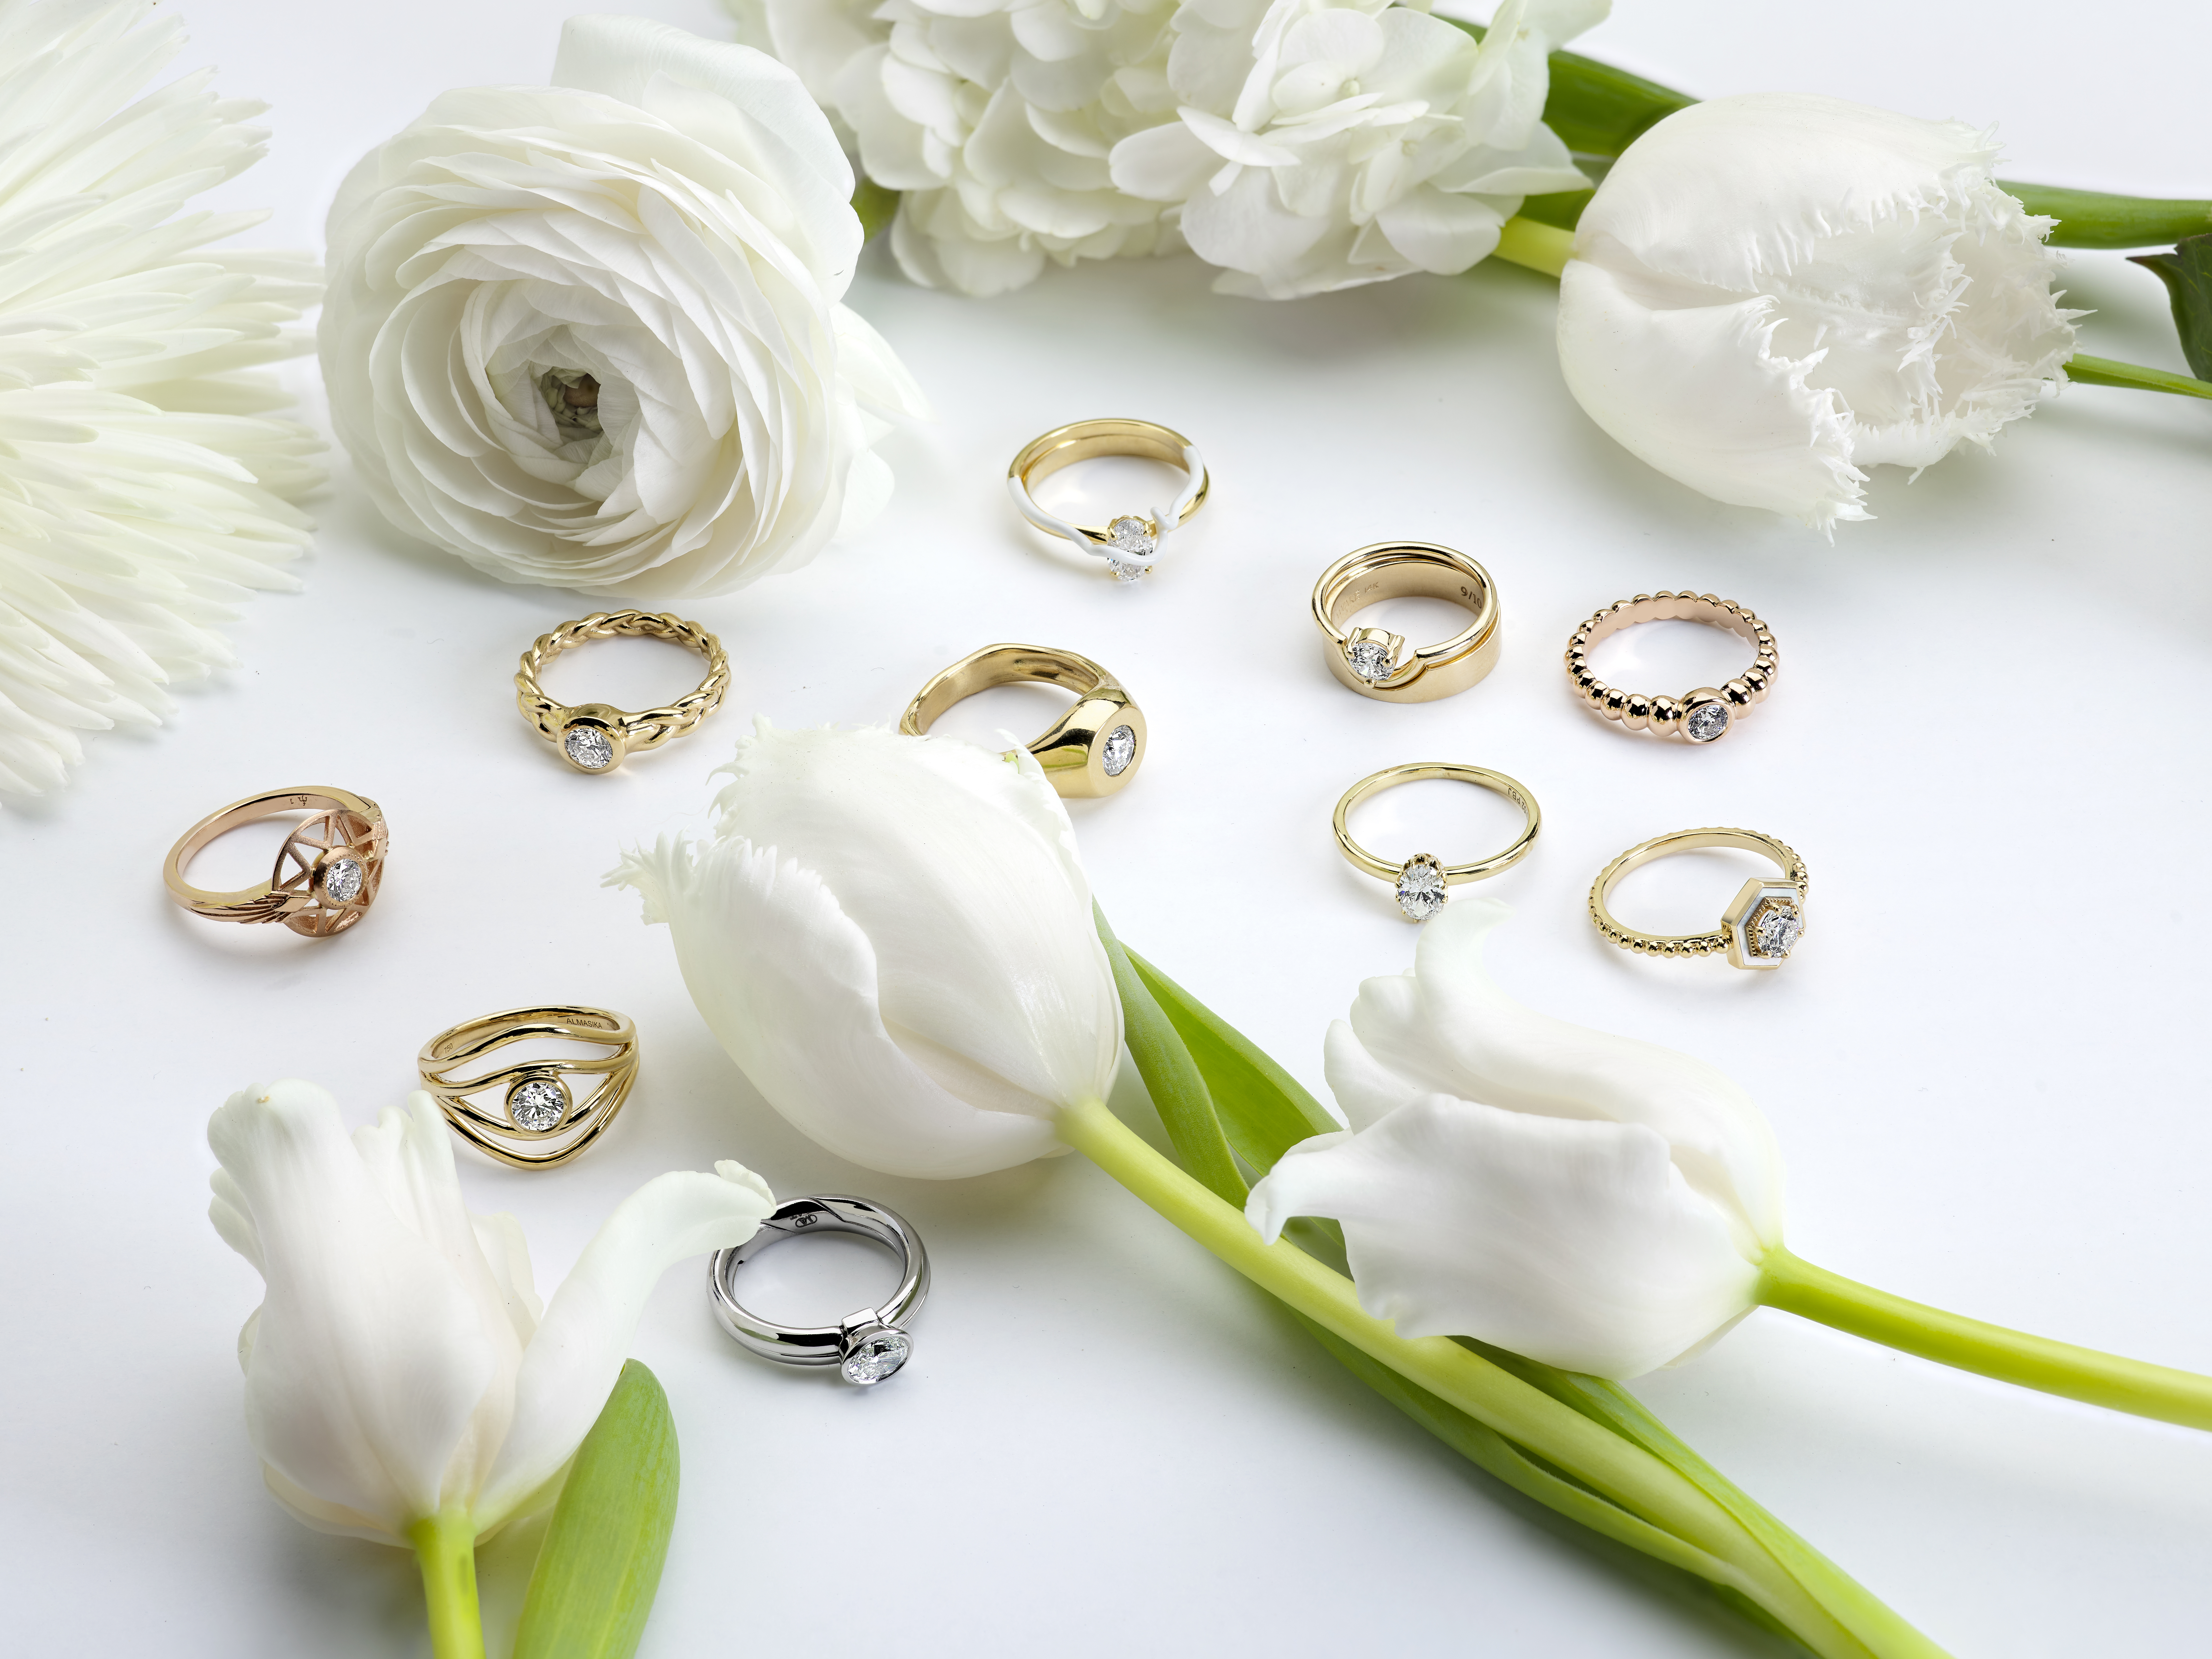 De Beers Lends a Hand to Independent Designers With Engagement Ring Collection